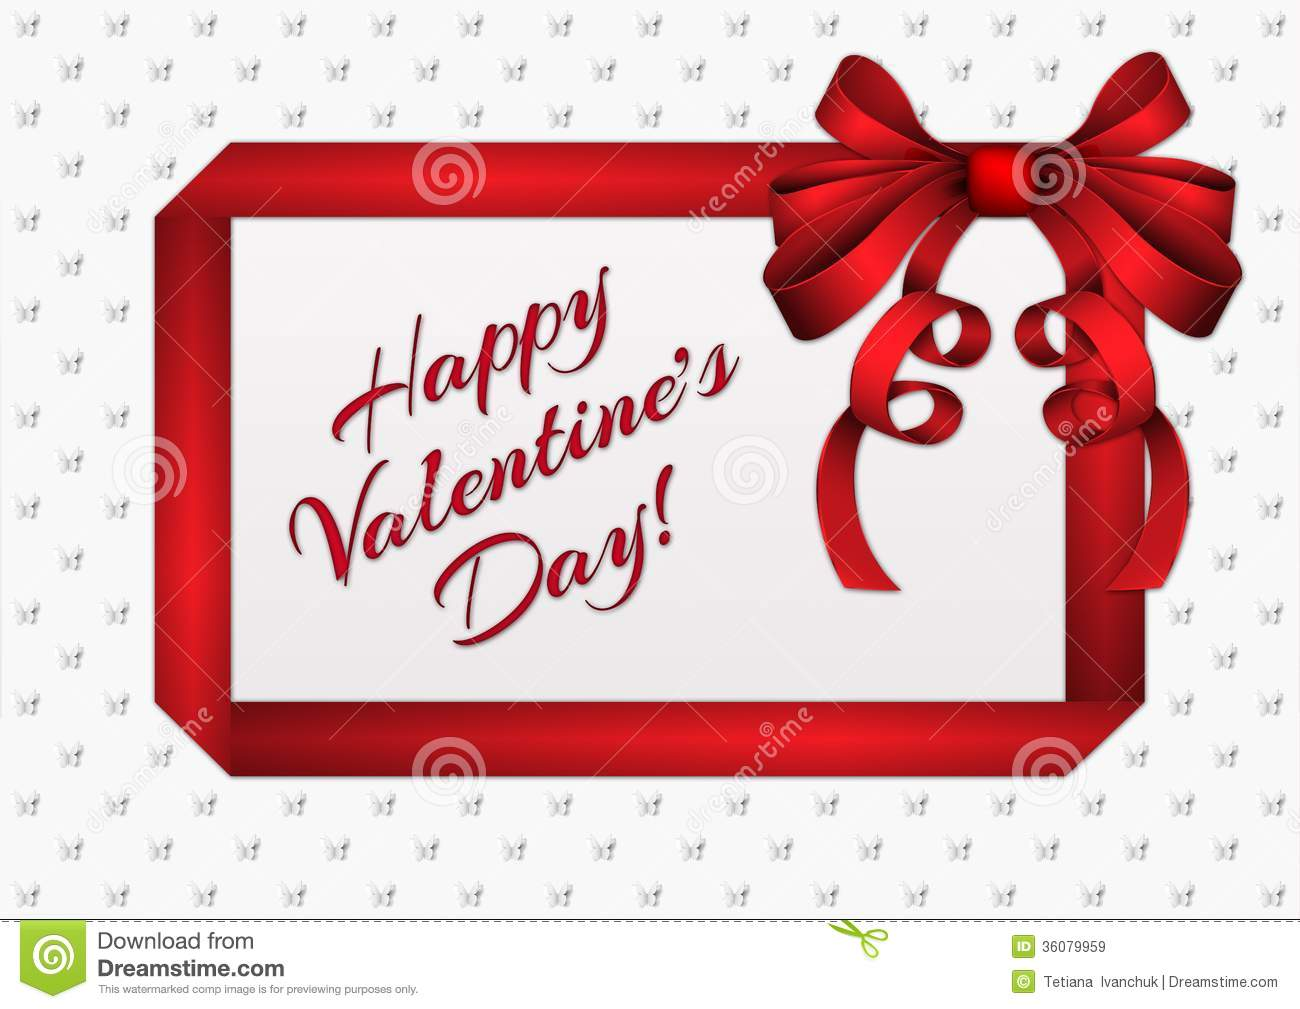 Valentine Greeting Card Royalty Free Stock Images - Image: 36079959